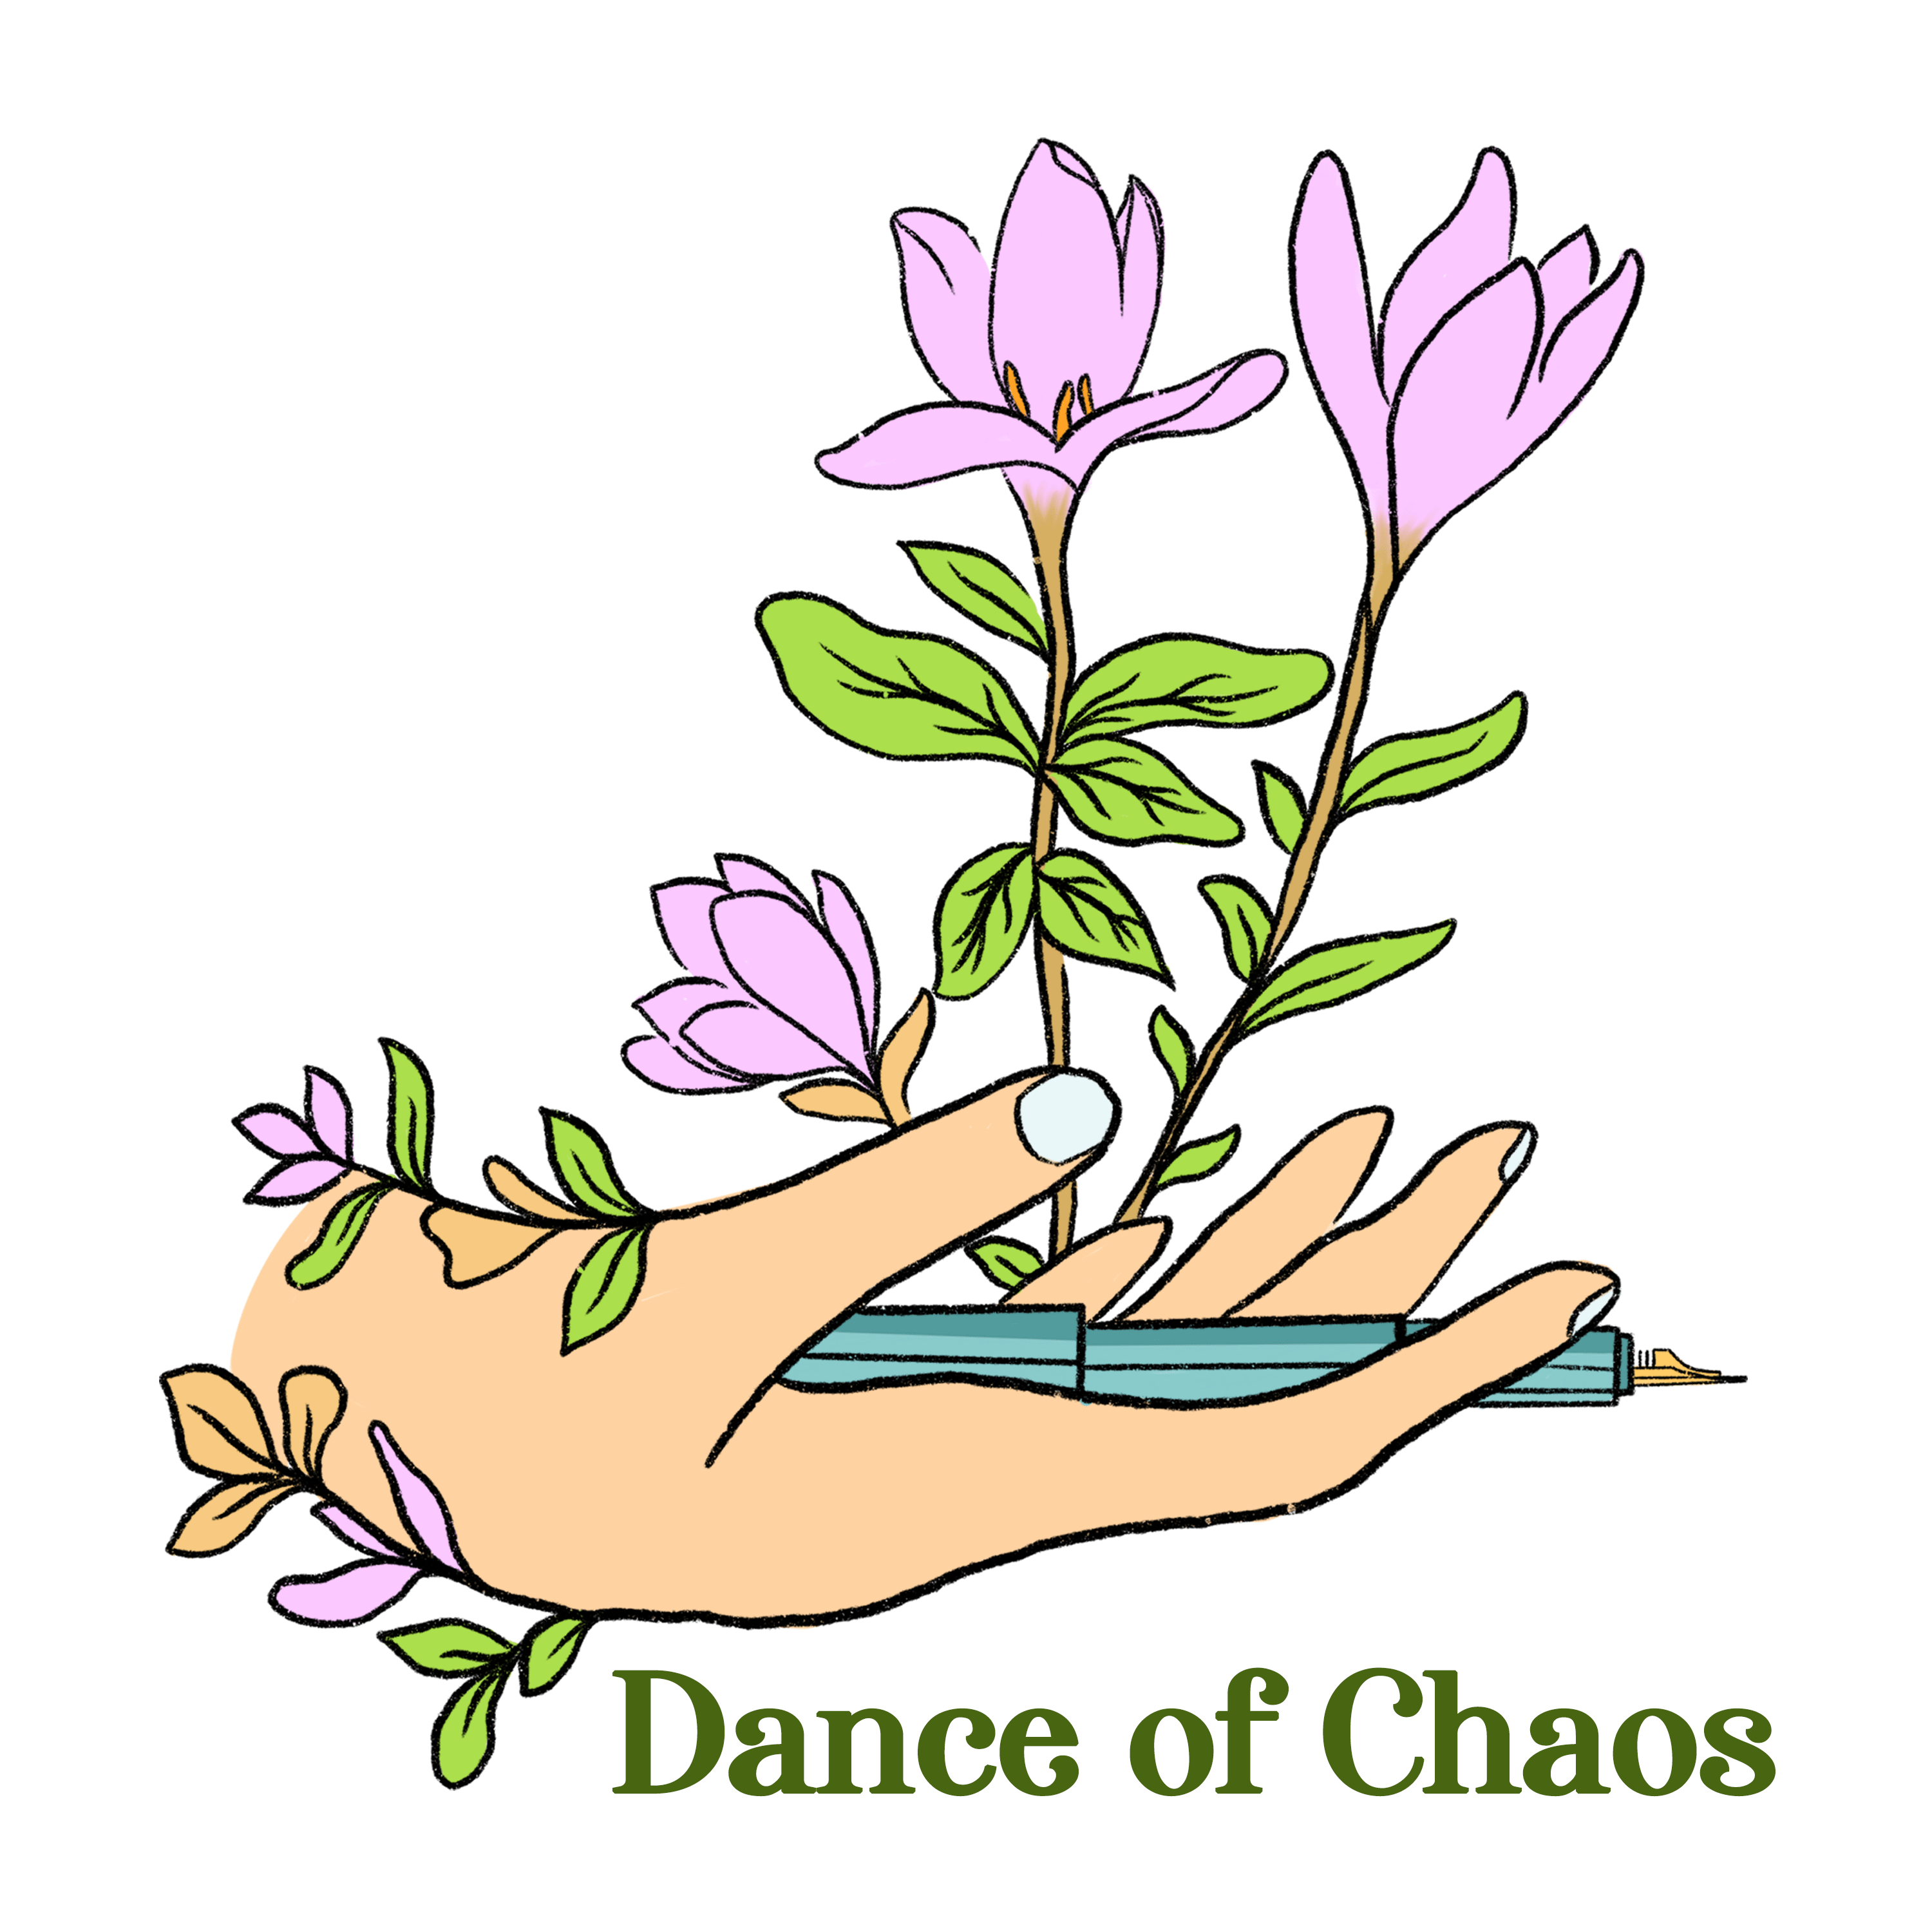 Dance of Chaos